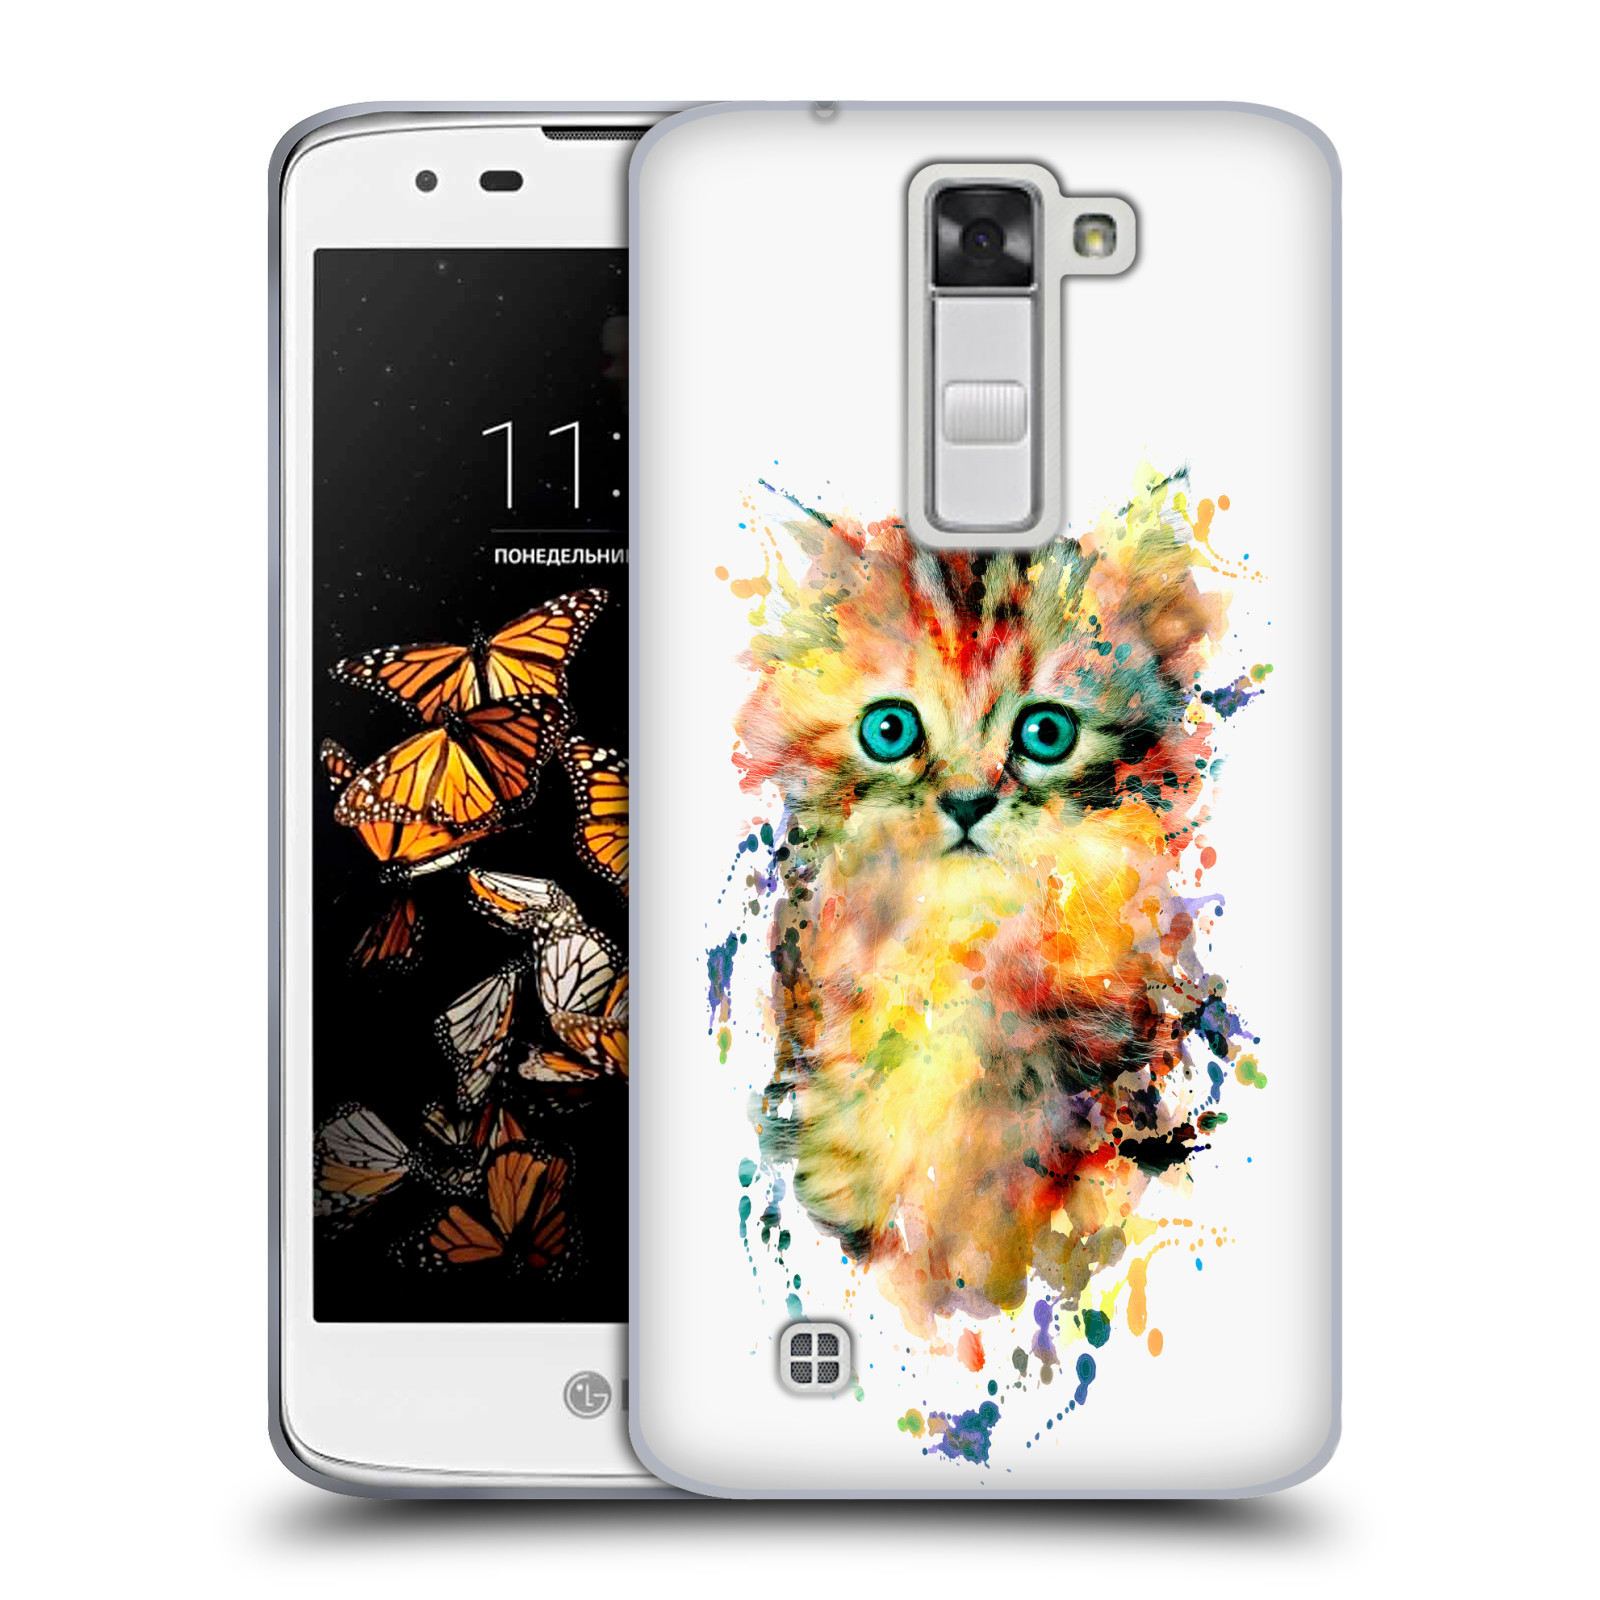 OFFICIAL-RIZA-PEKER-ANIMALS-2-SOFT-GEL-CASE-FOR-LG-PHONES-2